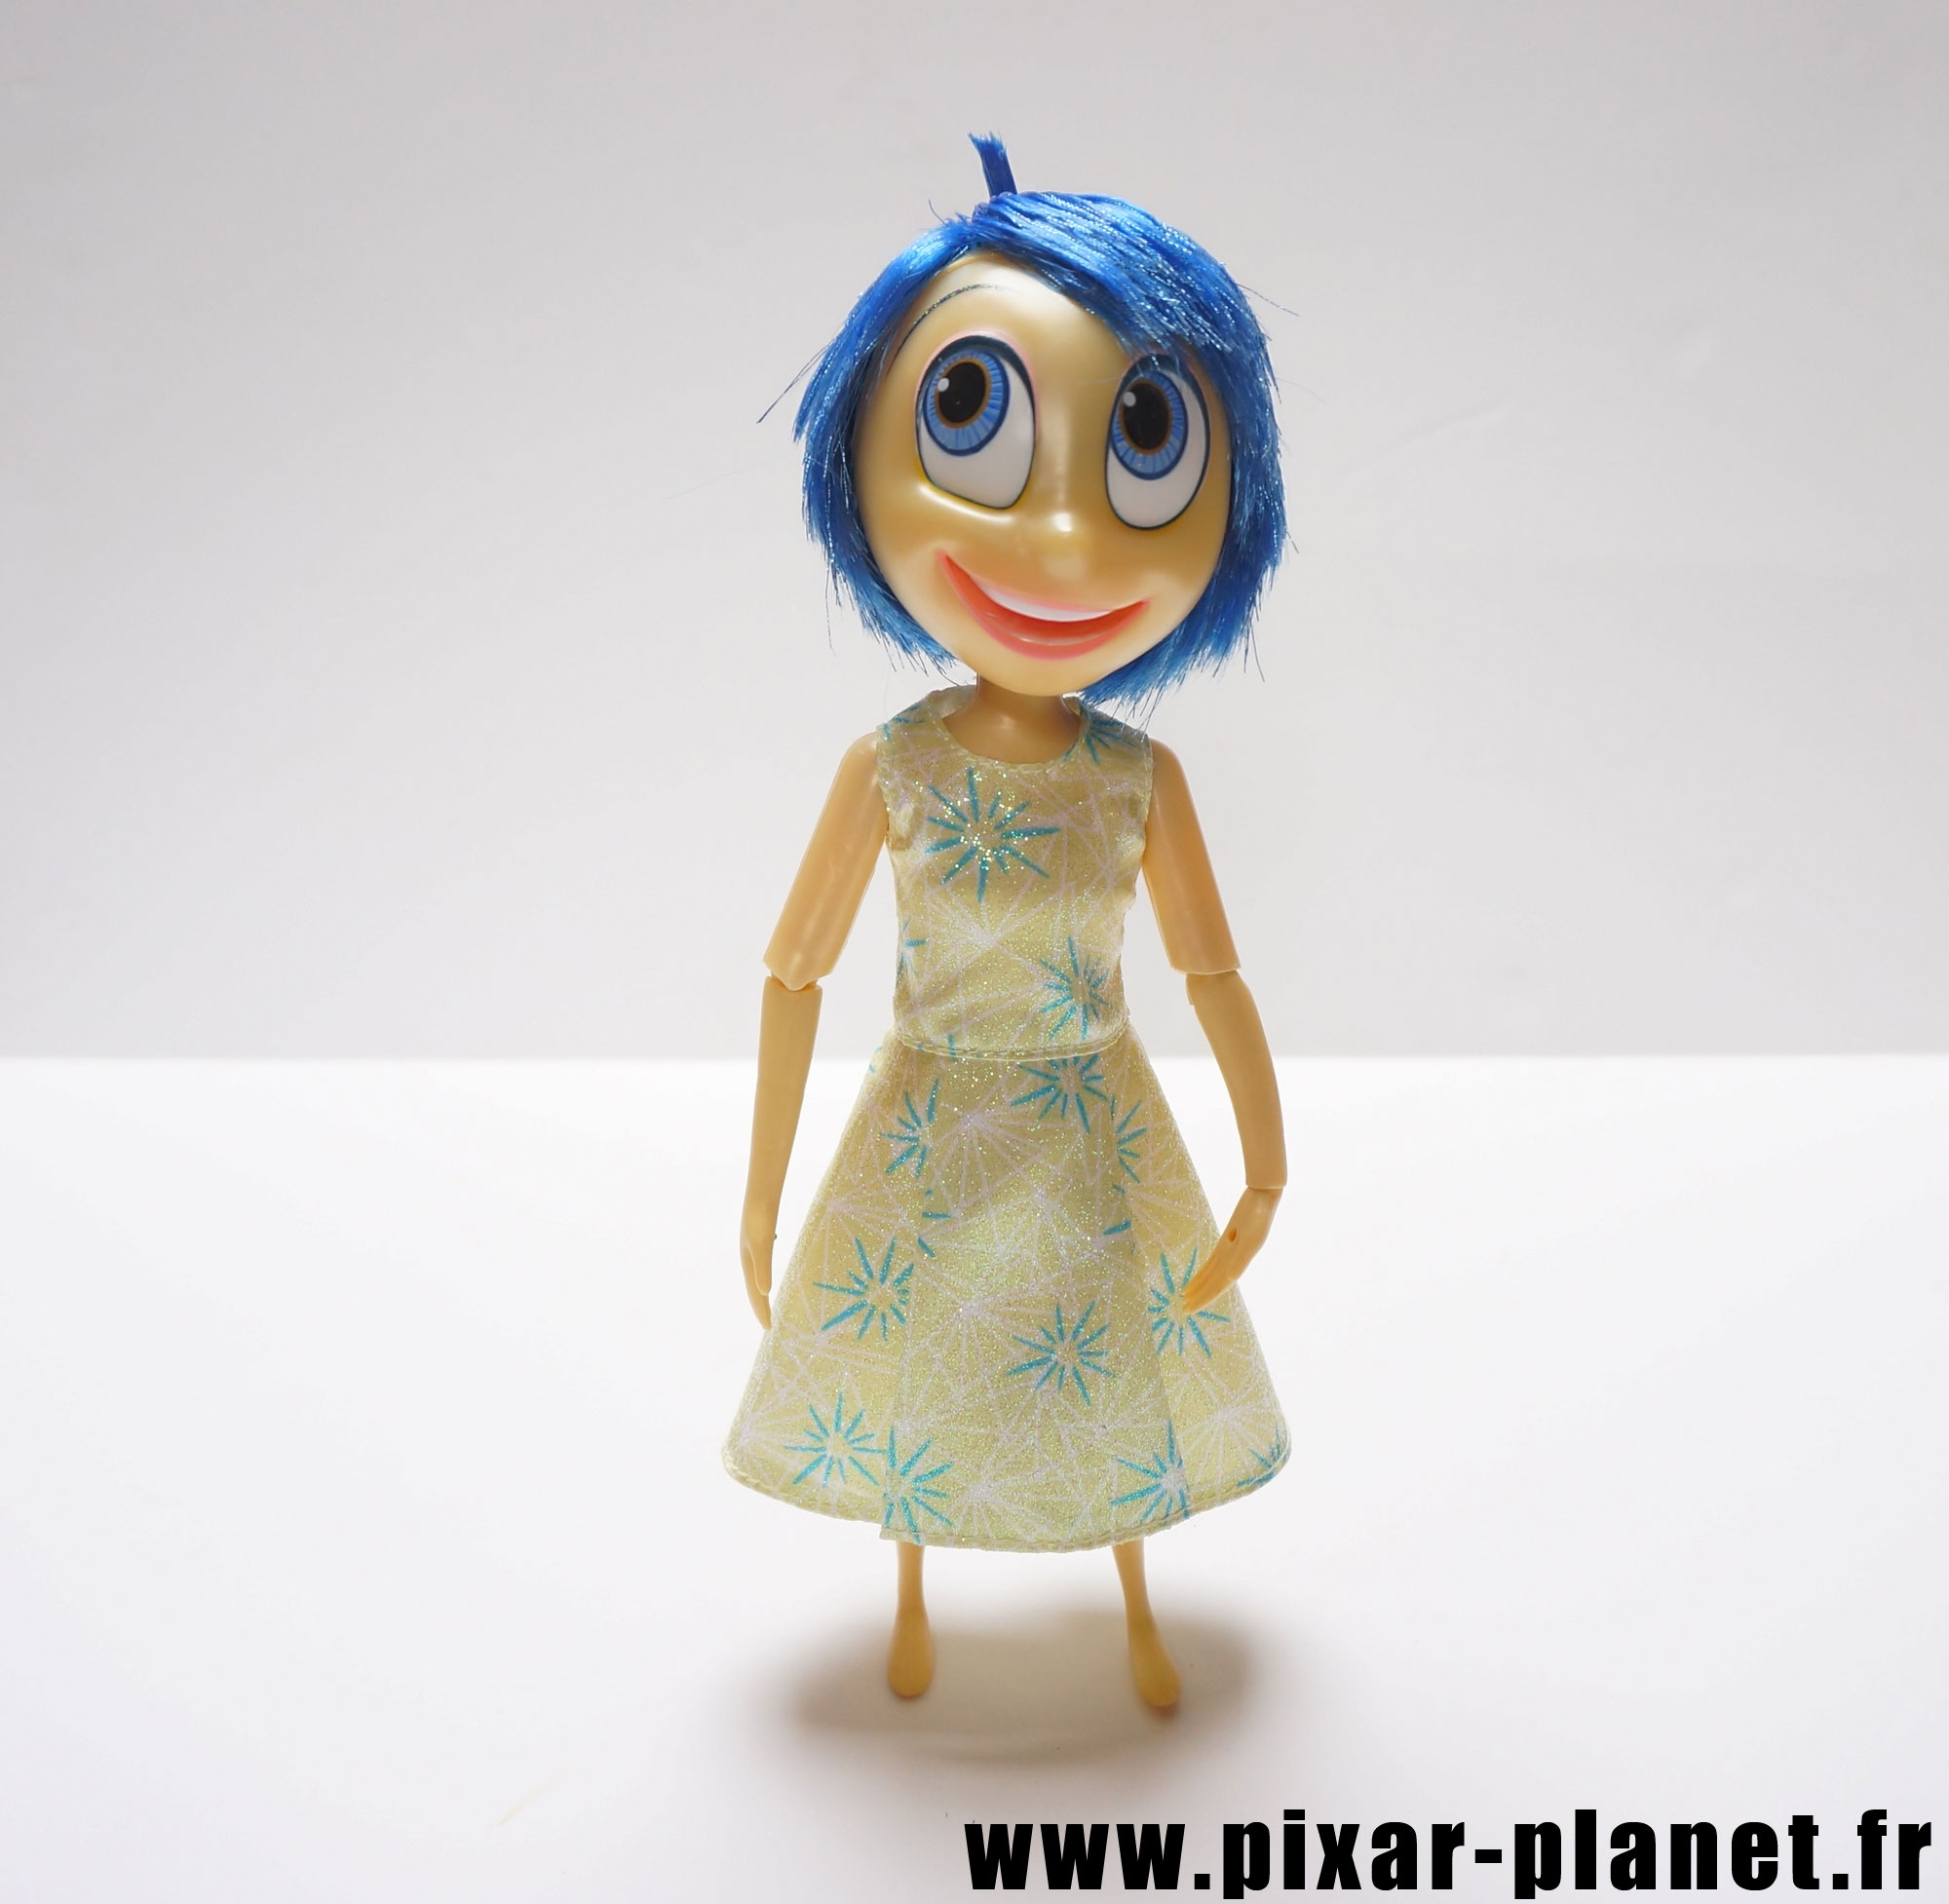 Pixar disney poupée toy vice versa inside out joie joy